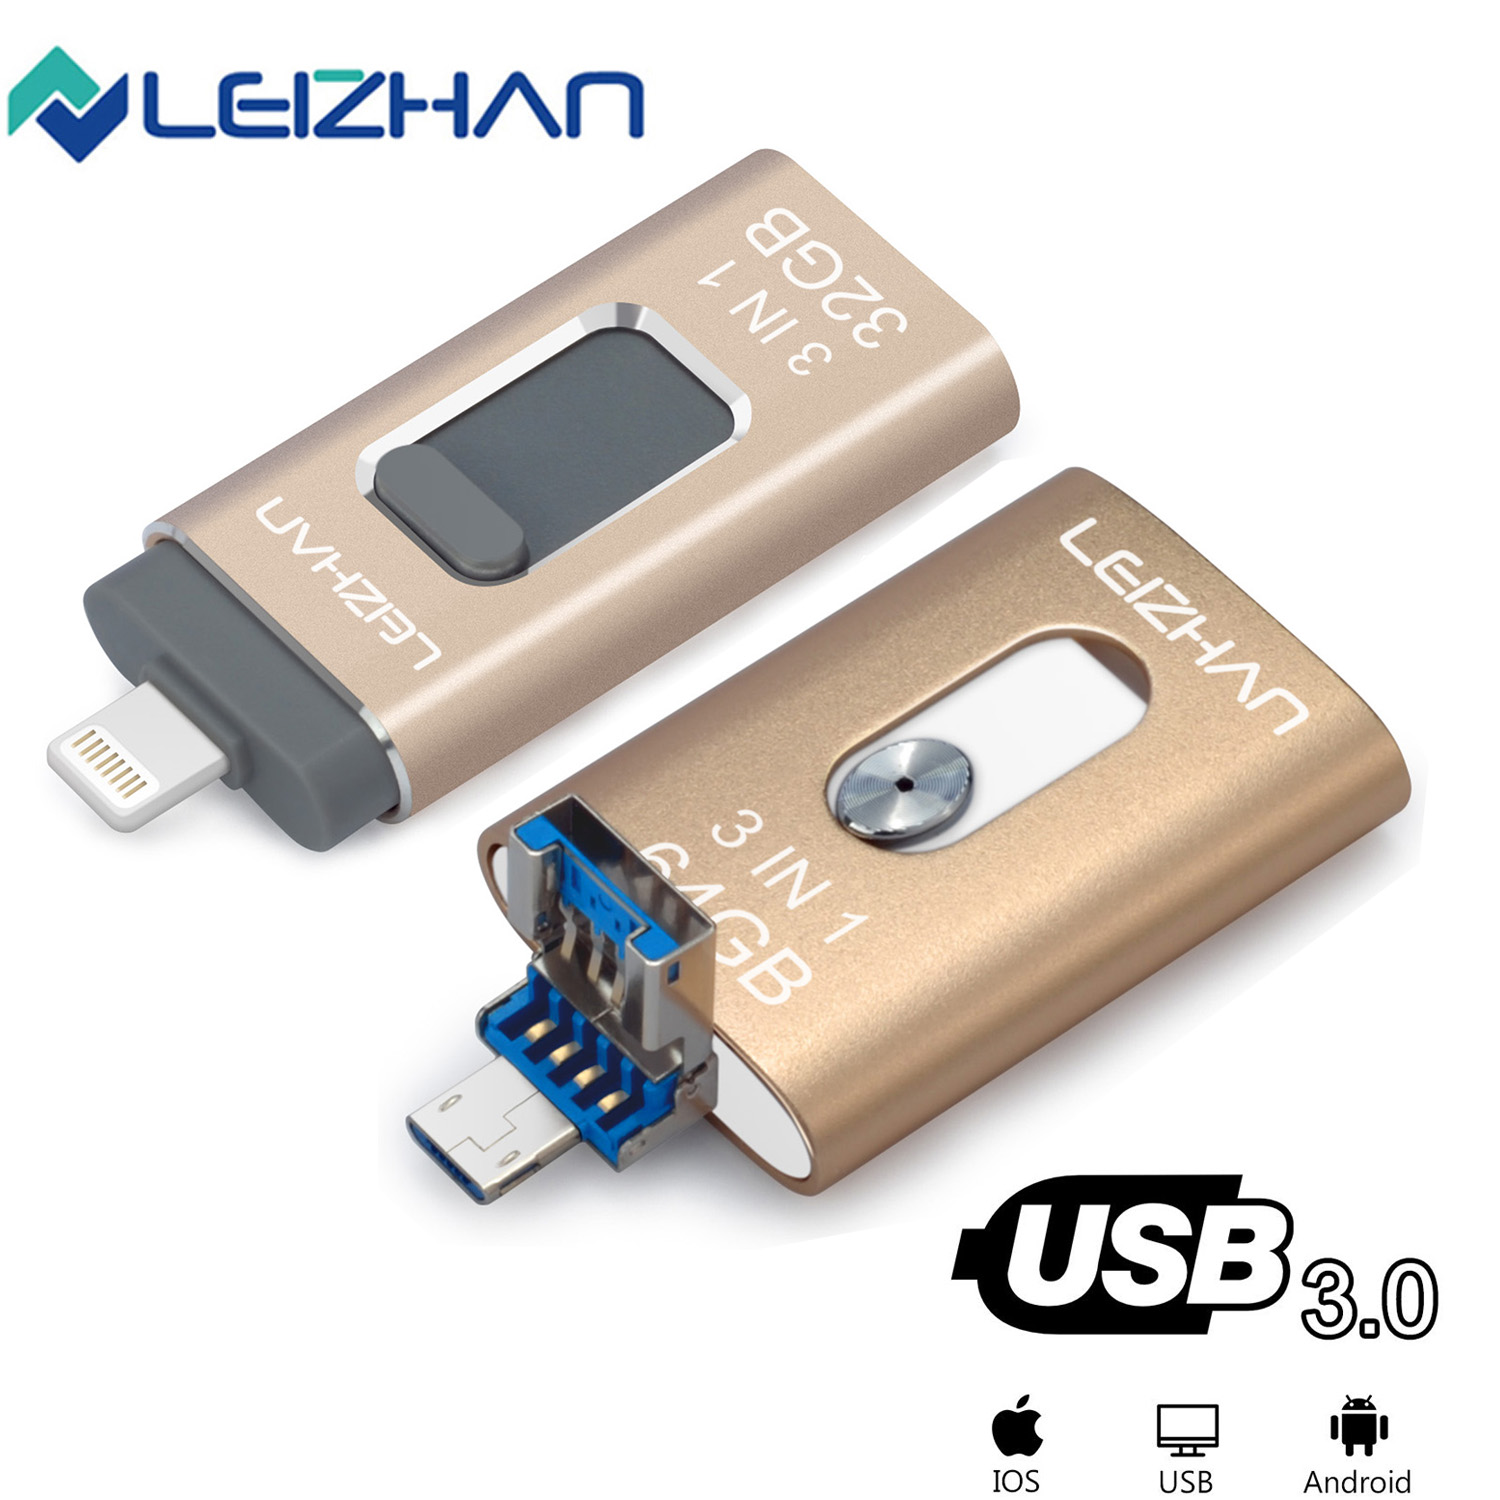 LEIZHAN Lightning USB Flash Drive For IPhone IPad Micro Android Phone Photostick Mobile 128GB 64GB 32GB 16GB Pendrive Usb 3.0